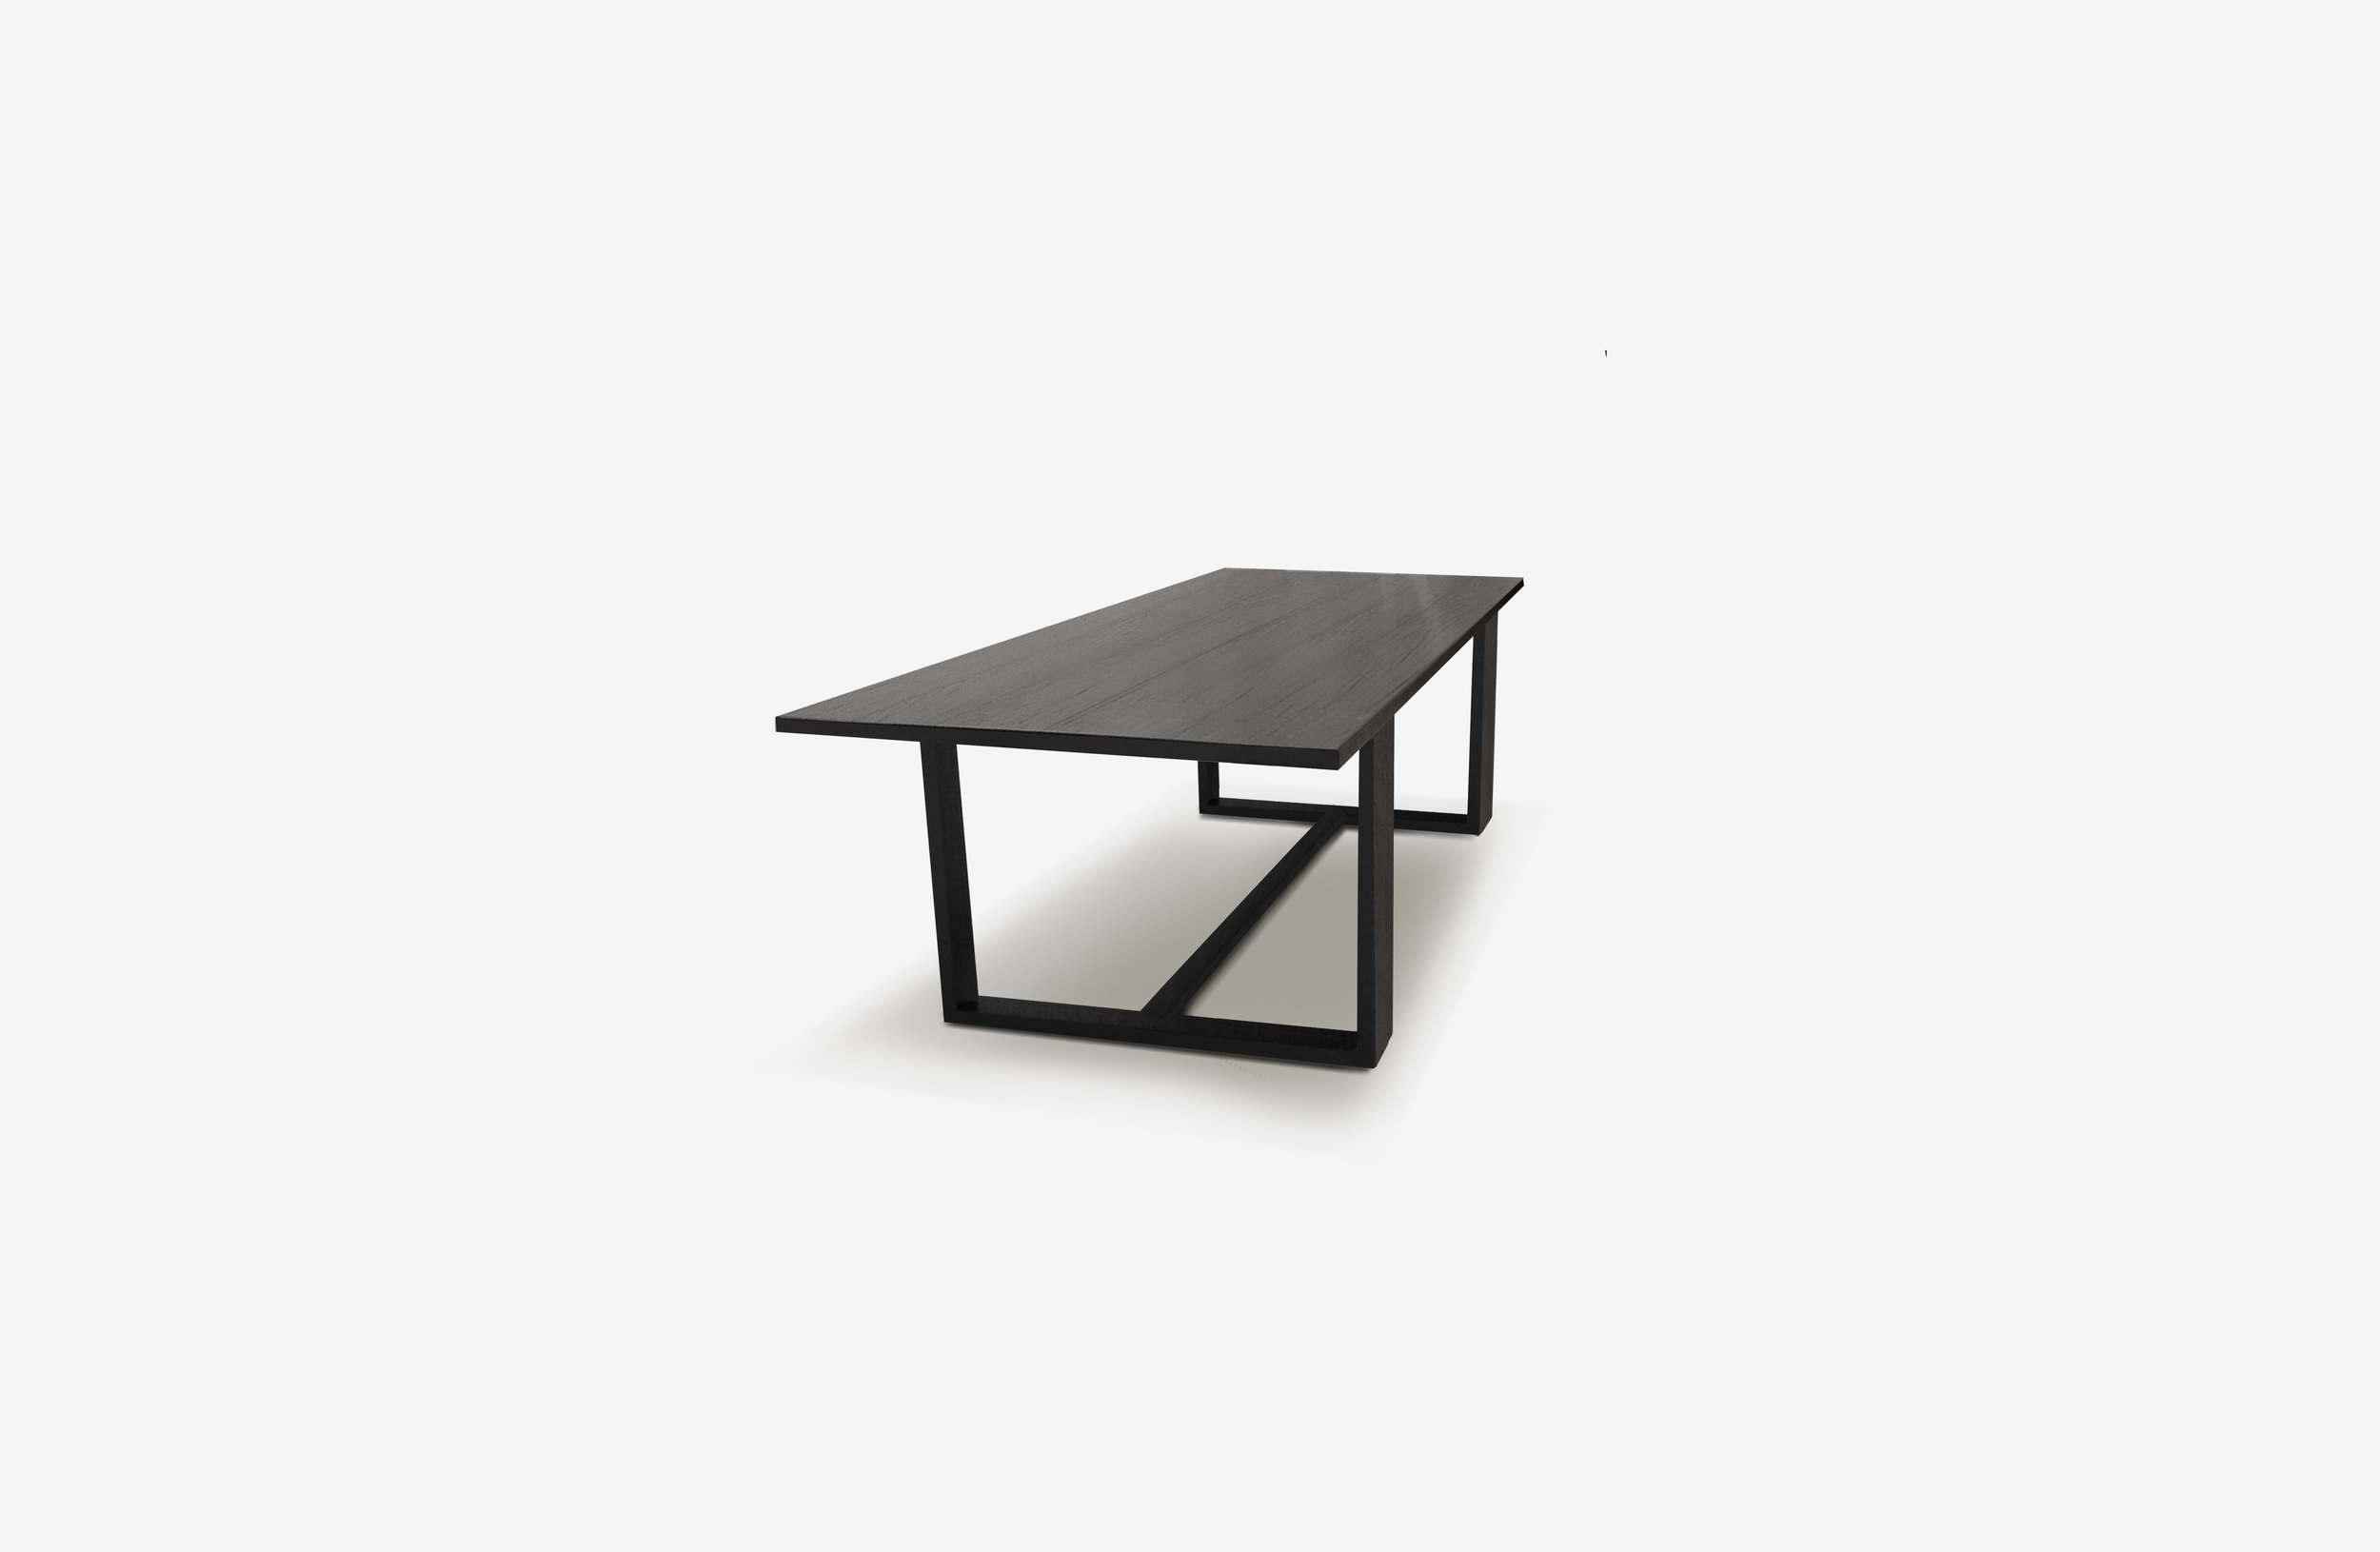 Heath table by workshed.   The Heath dining table offers a refined minimal silhouette. It's simplistic design makes it a timeless piece of furniture.   Ideal for any contemporary space. The heath tables are made by our own craftsmen in a range of standard sizes or custom made to suit your requirements.